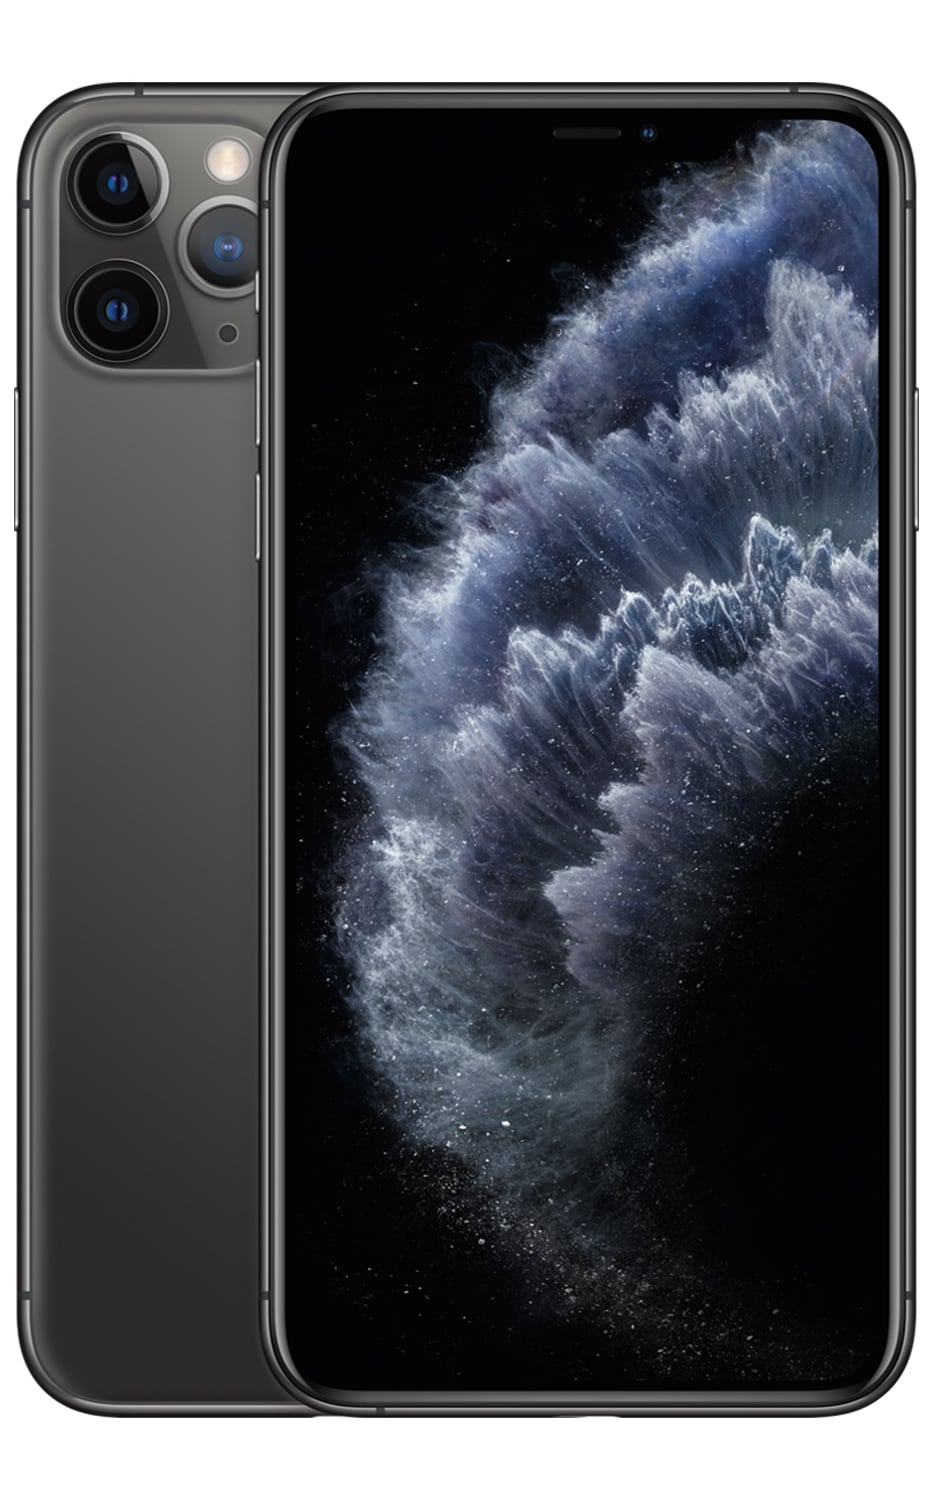 iPhone 11 Pro Max on